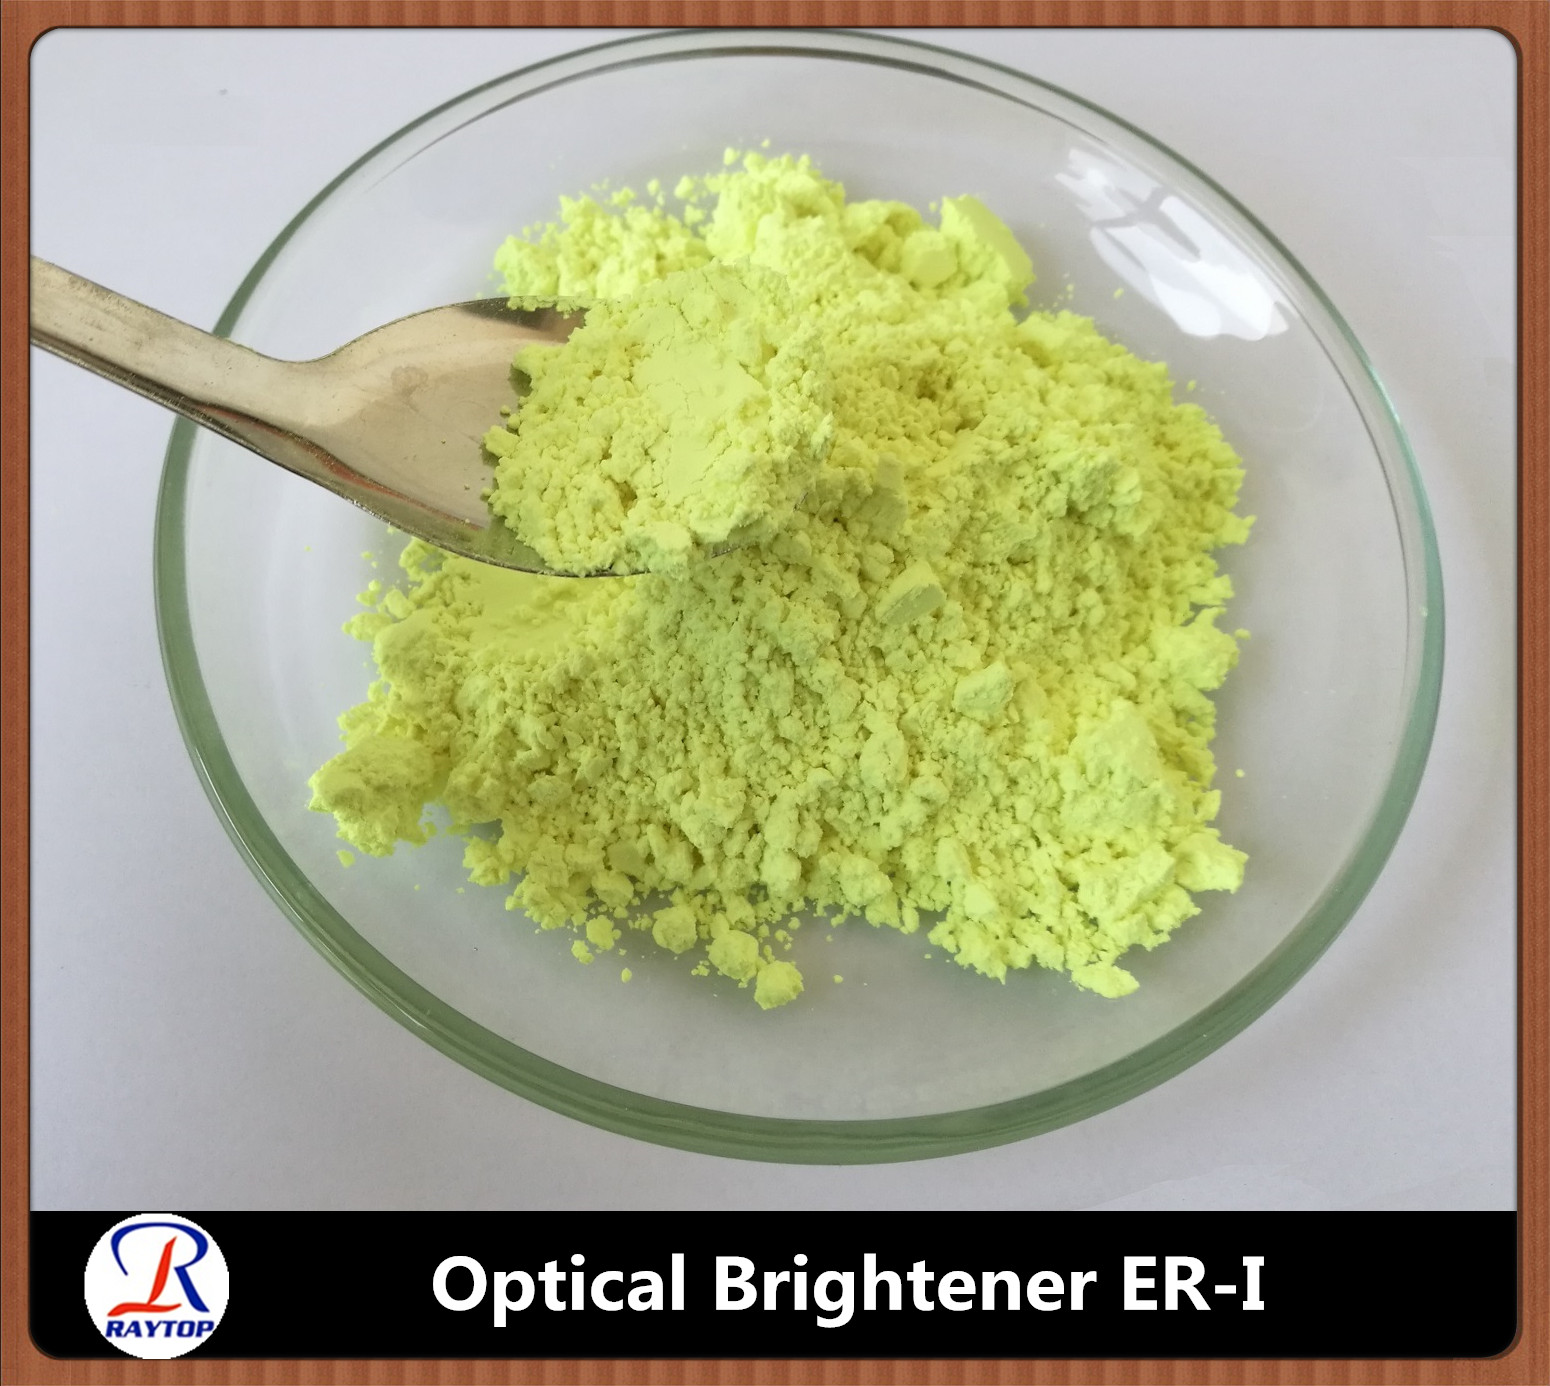 Optical Brightener ER